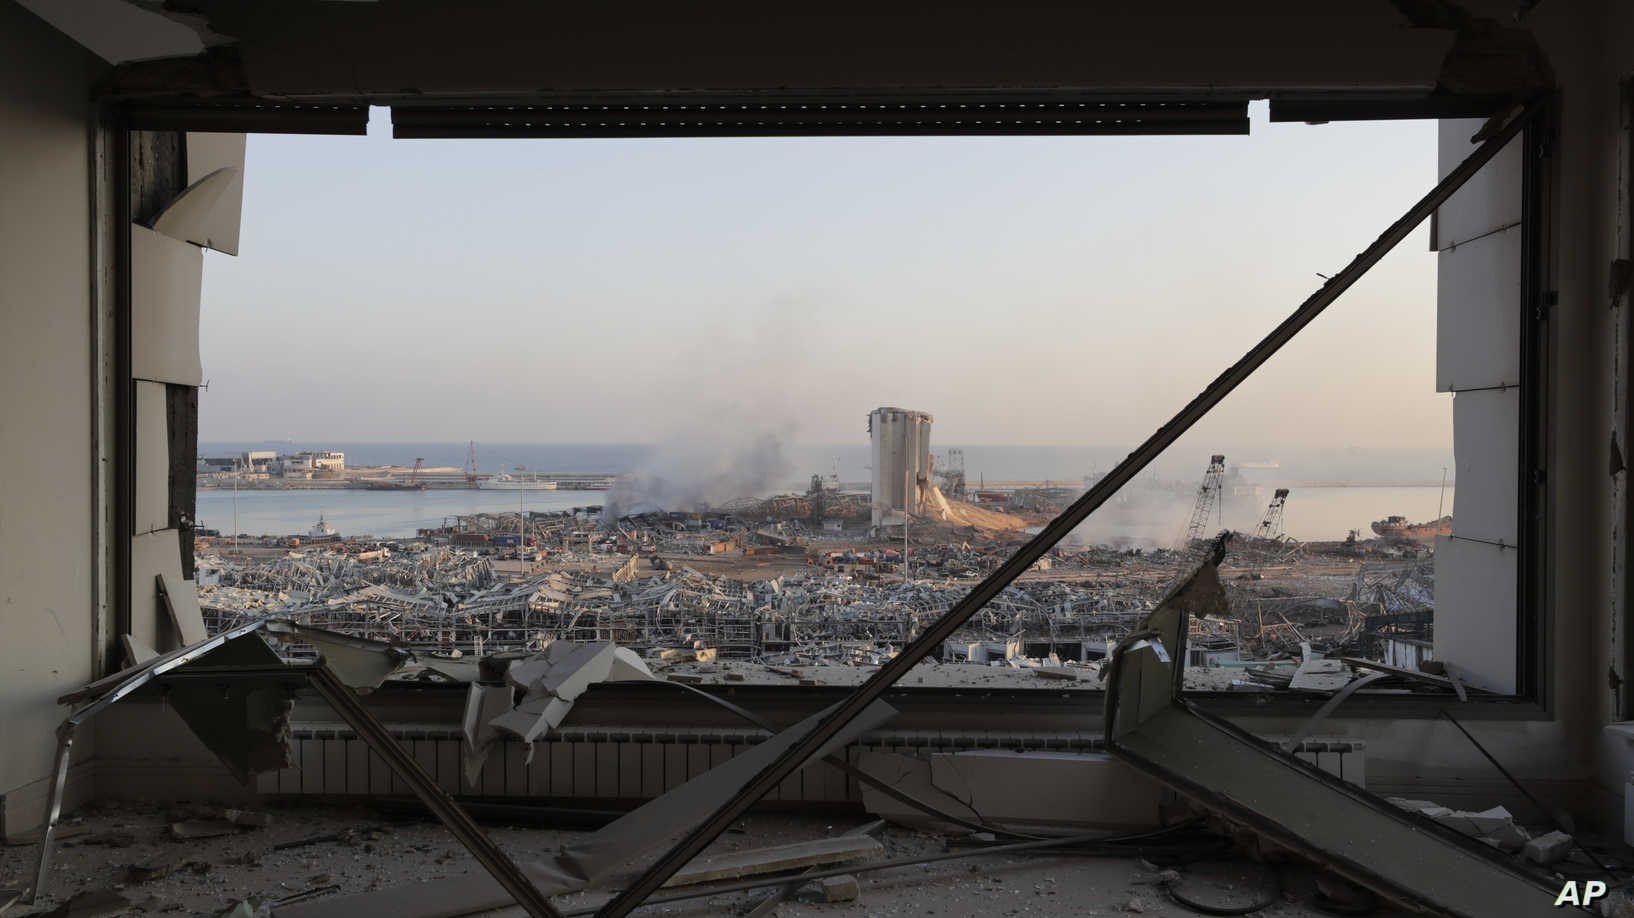 Beirut explosion: the path to disaster